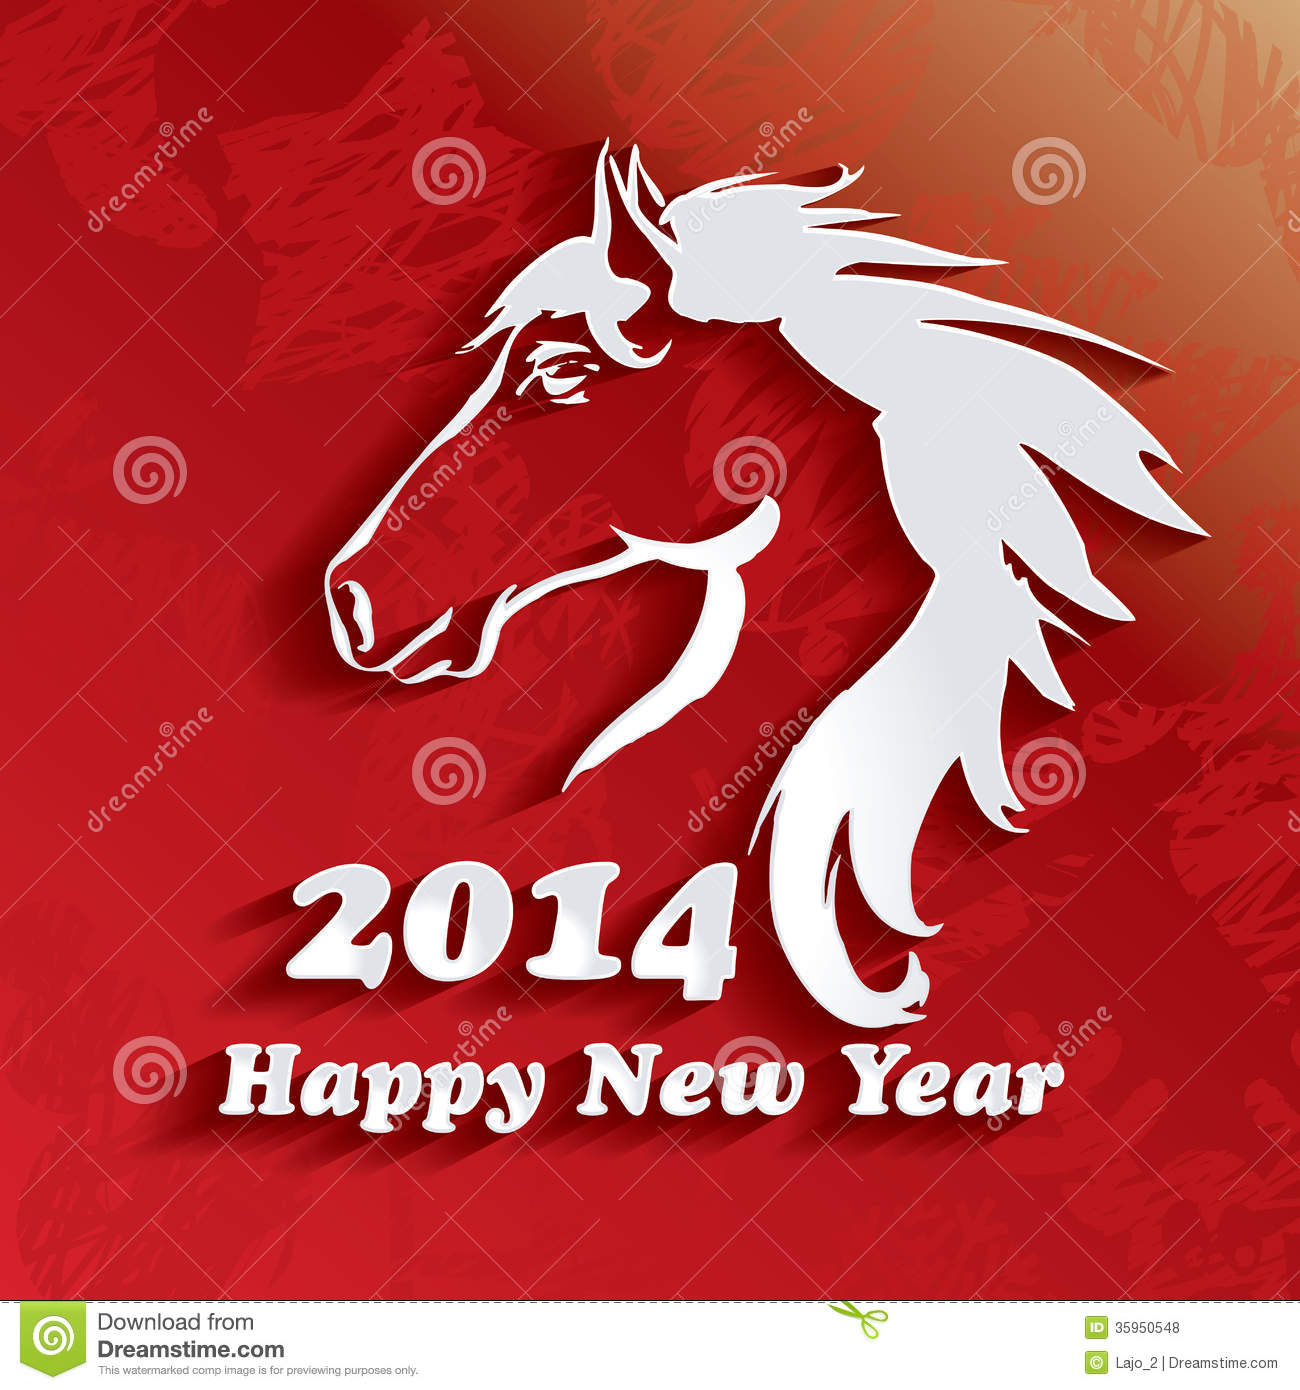 Happy New Year Horse Images 88